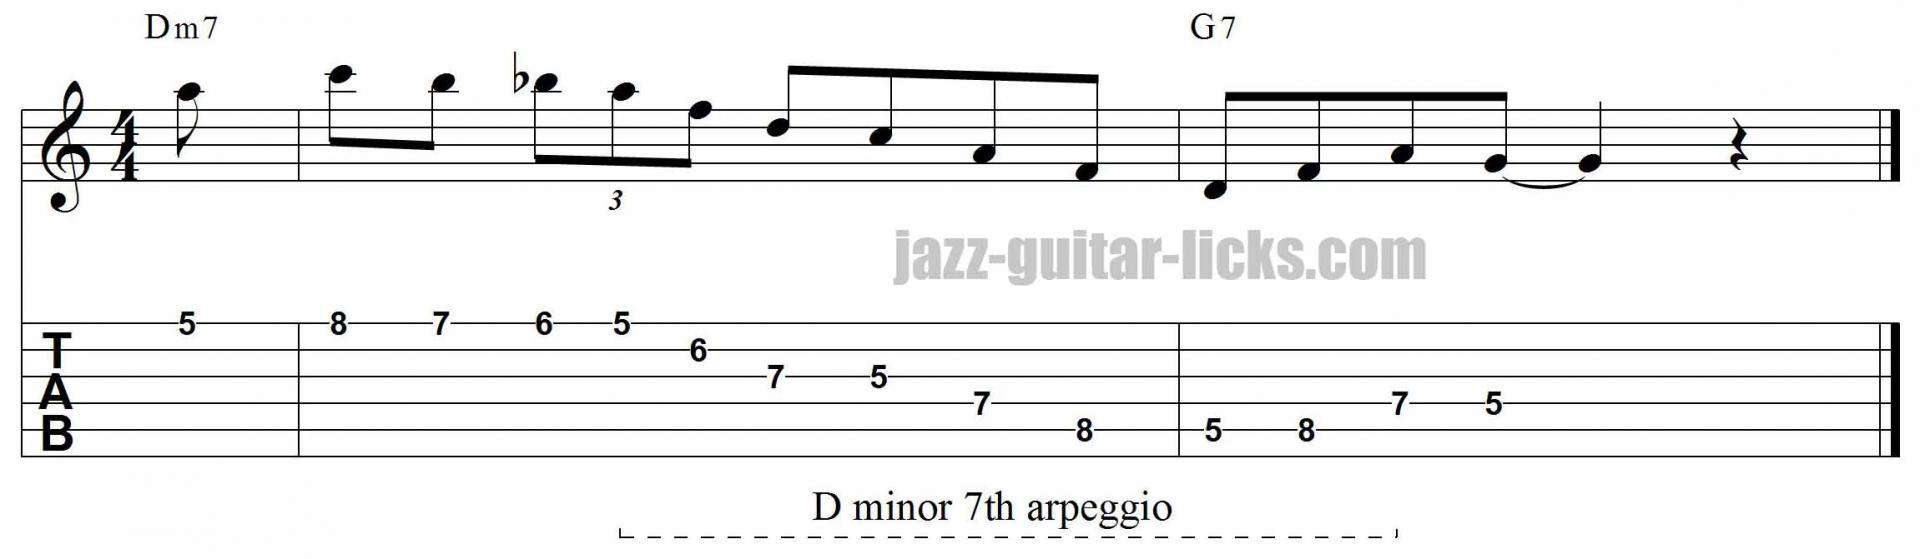 Minor 7th arpeggio jazz guitar lick 1